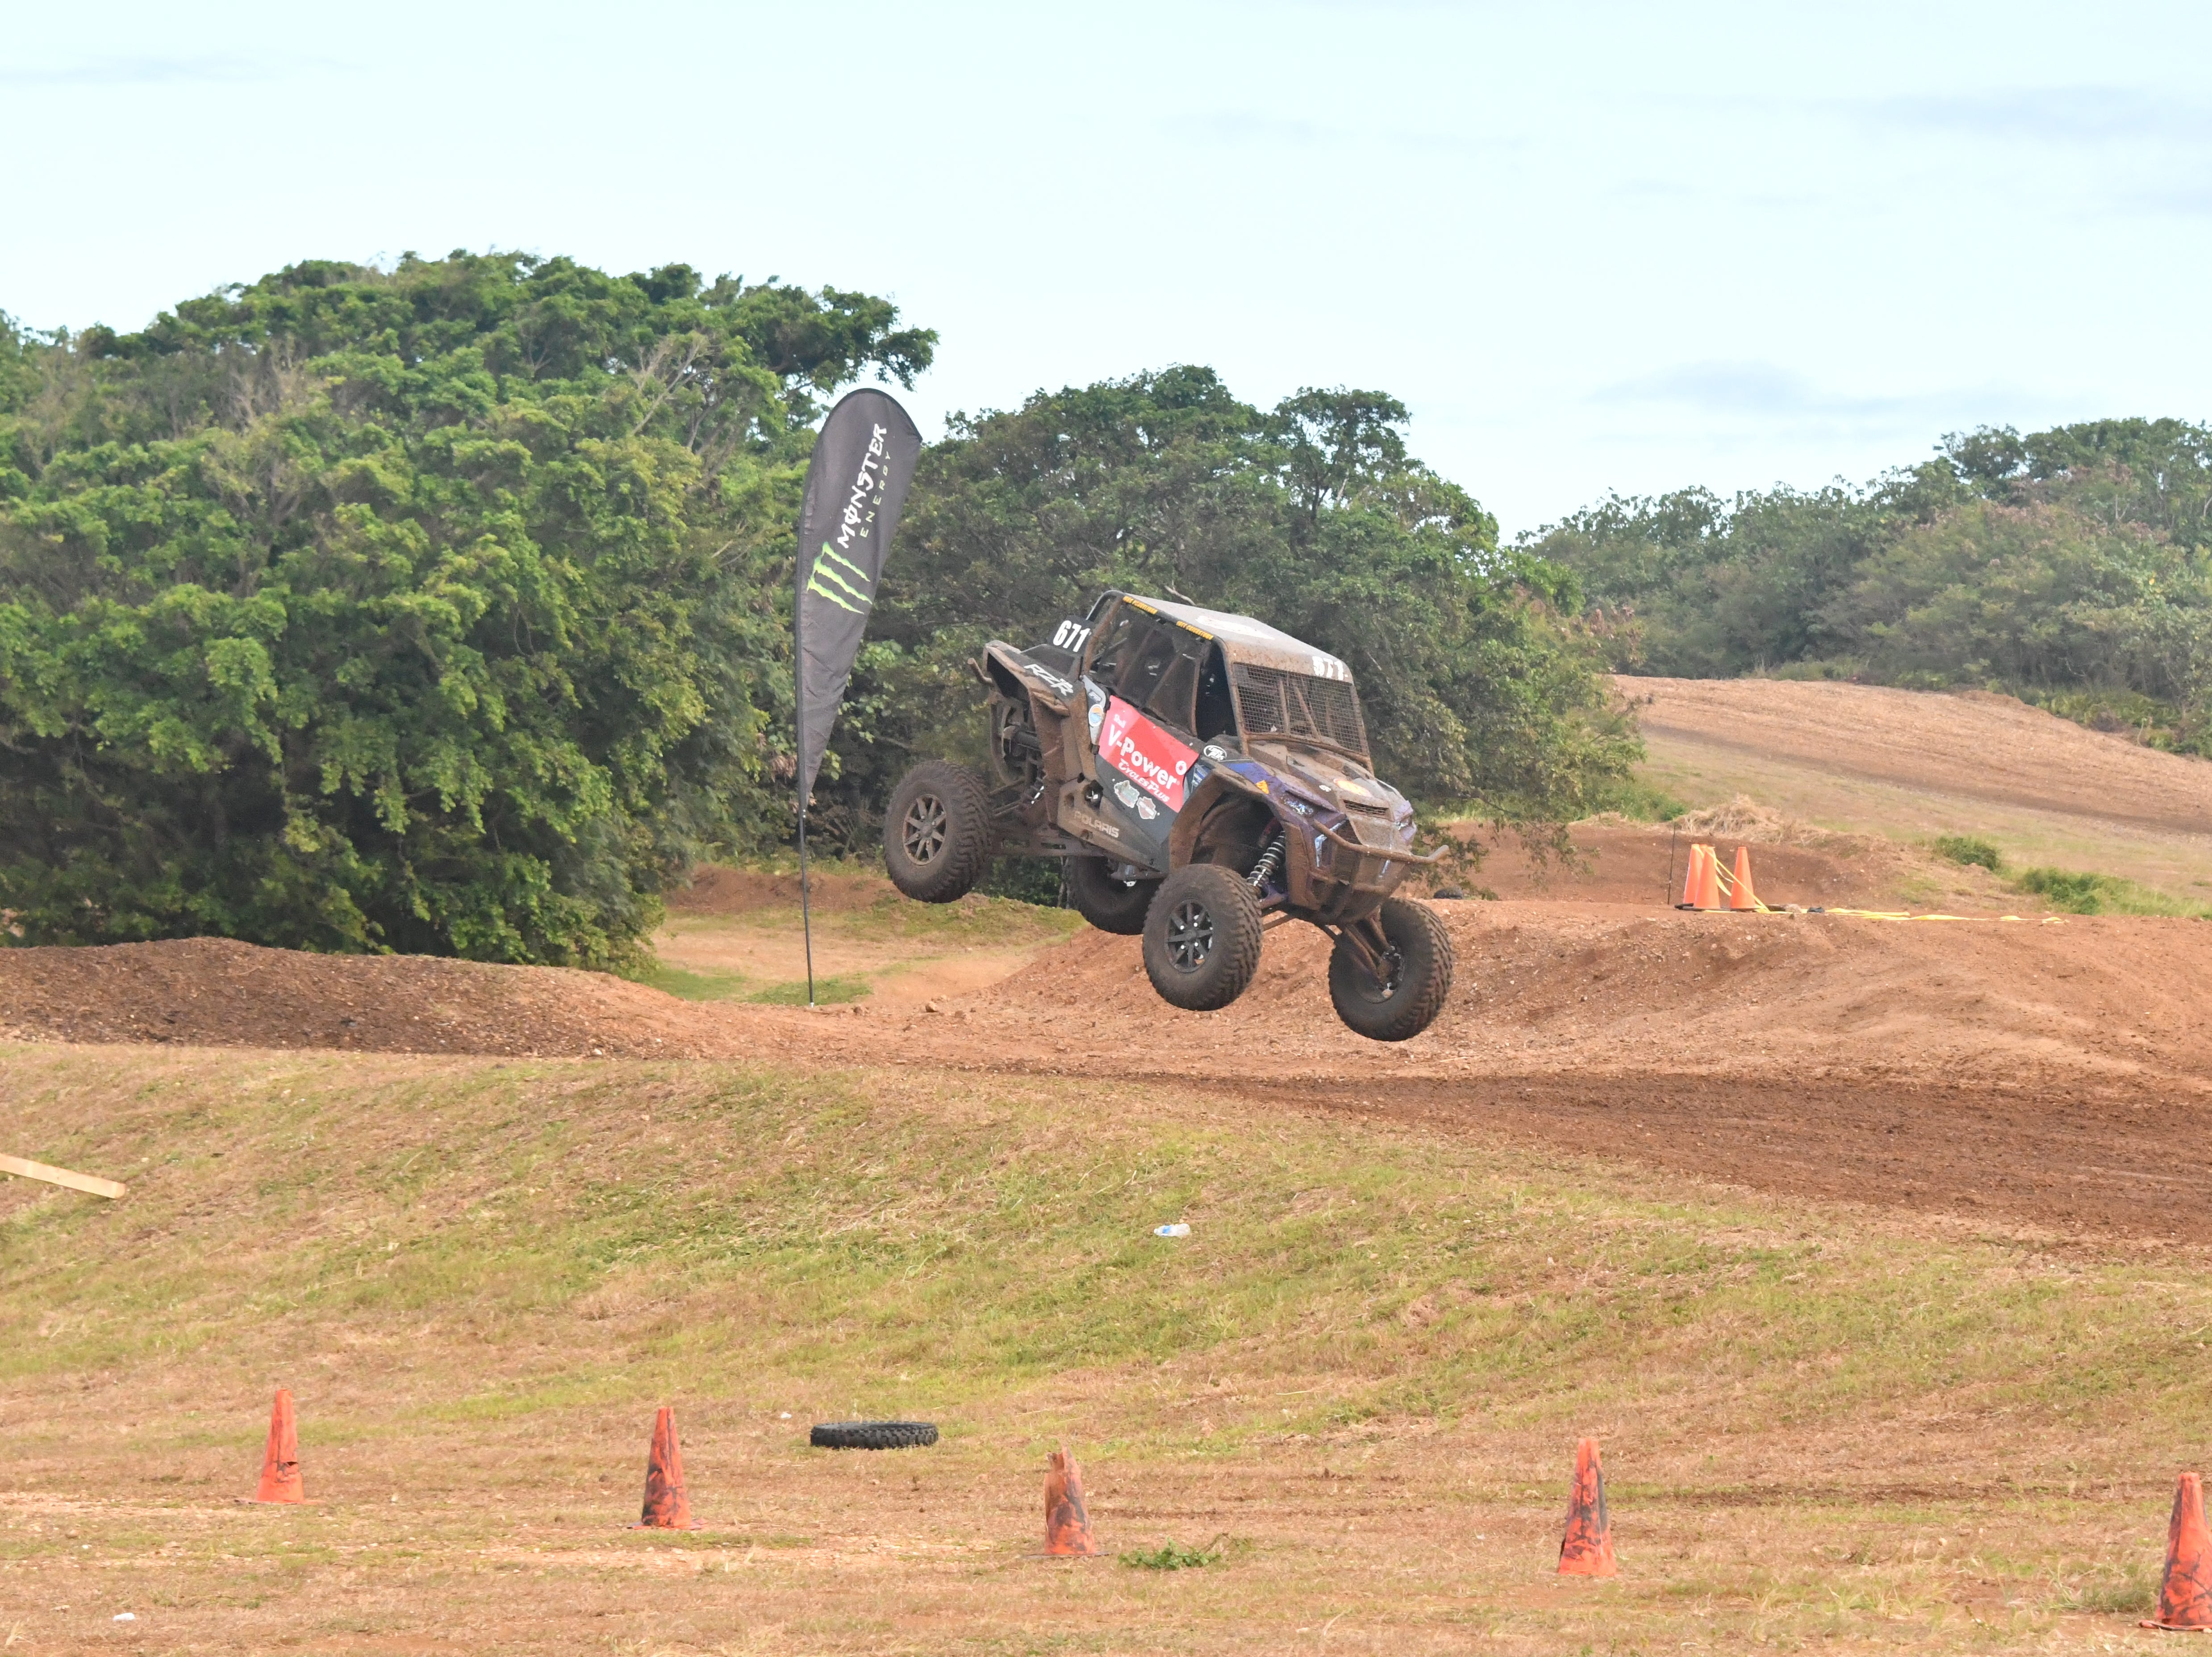 Action from the main event, the Offroad Enduro, at the 39th APL Smokin' Wheels at the Guam International Raceway.